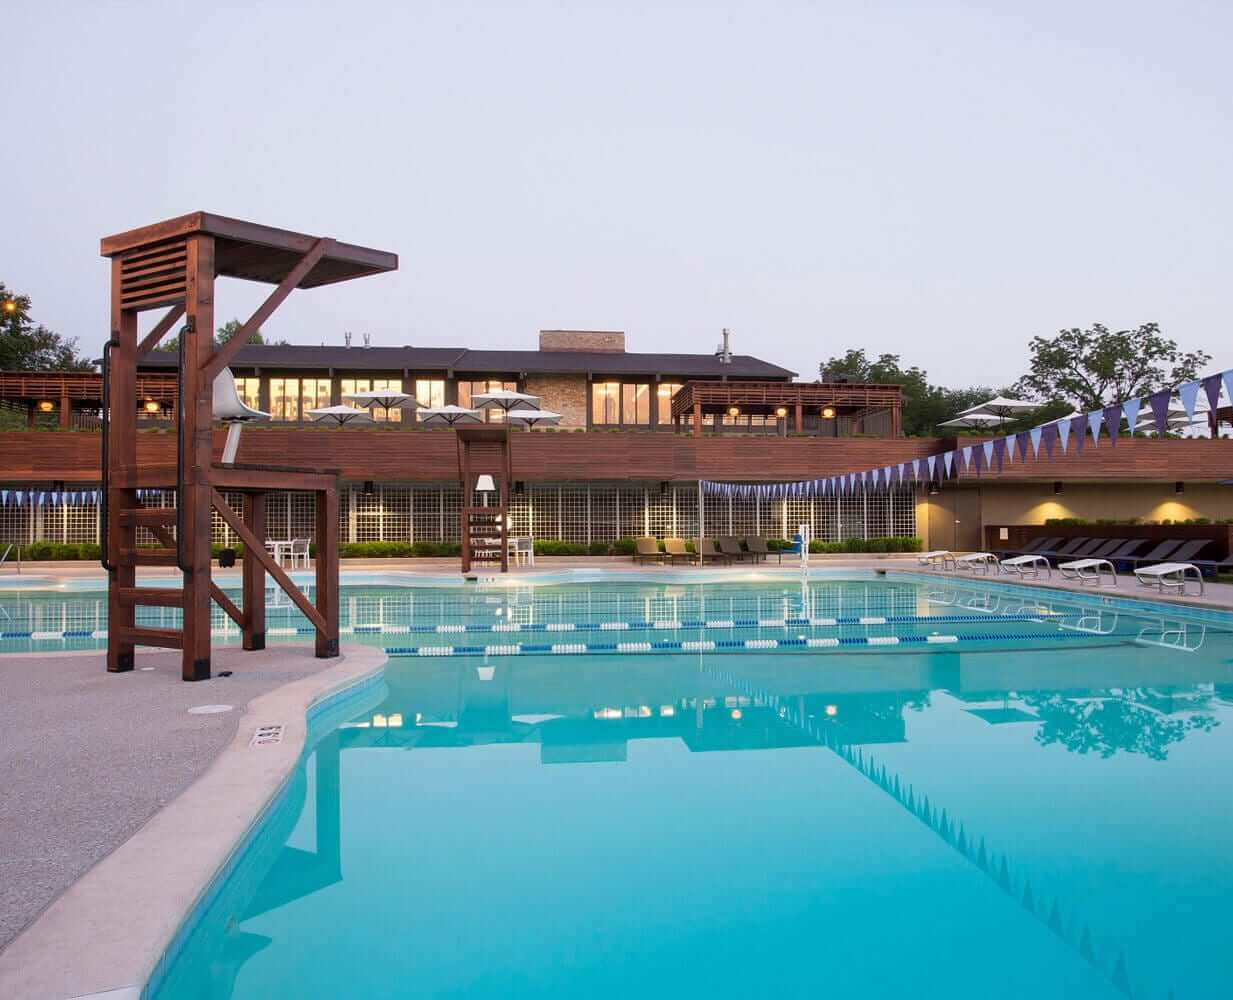 woodside-kansas-city-gym-with-outdoor-pools